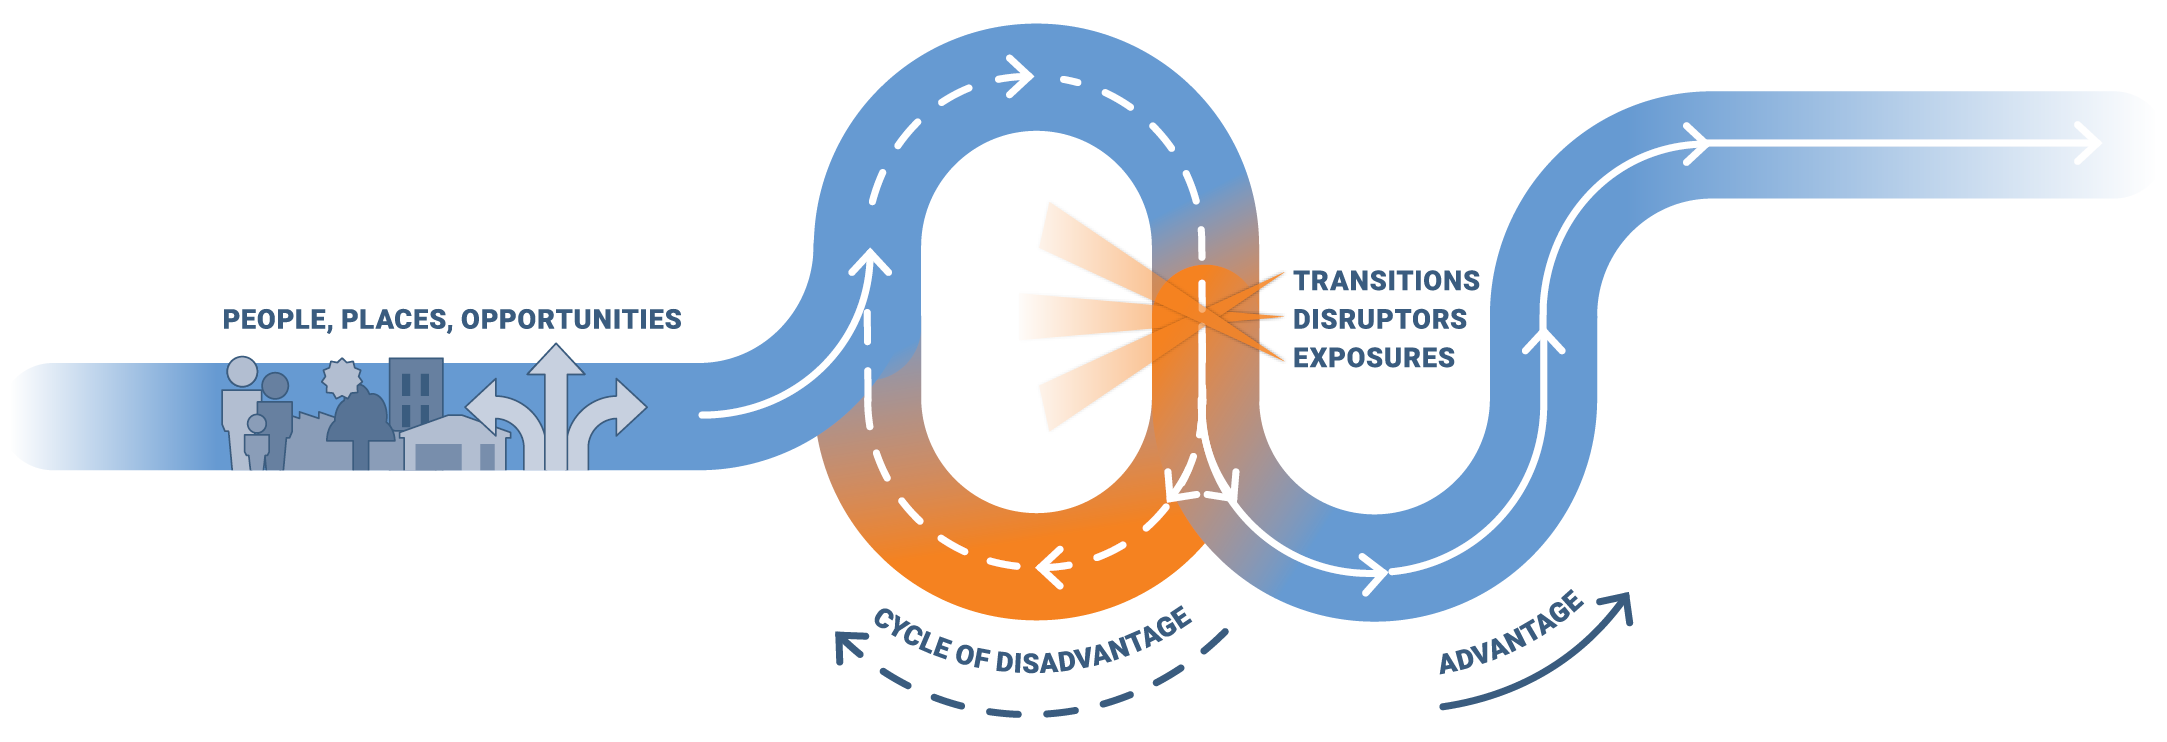 The Life Course Approach graphic